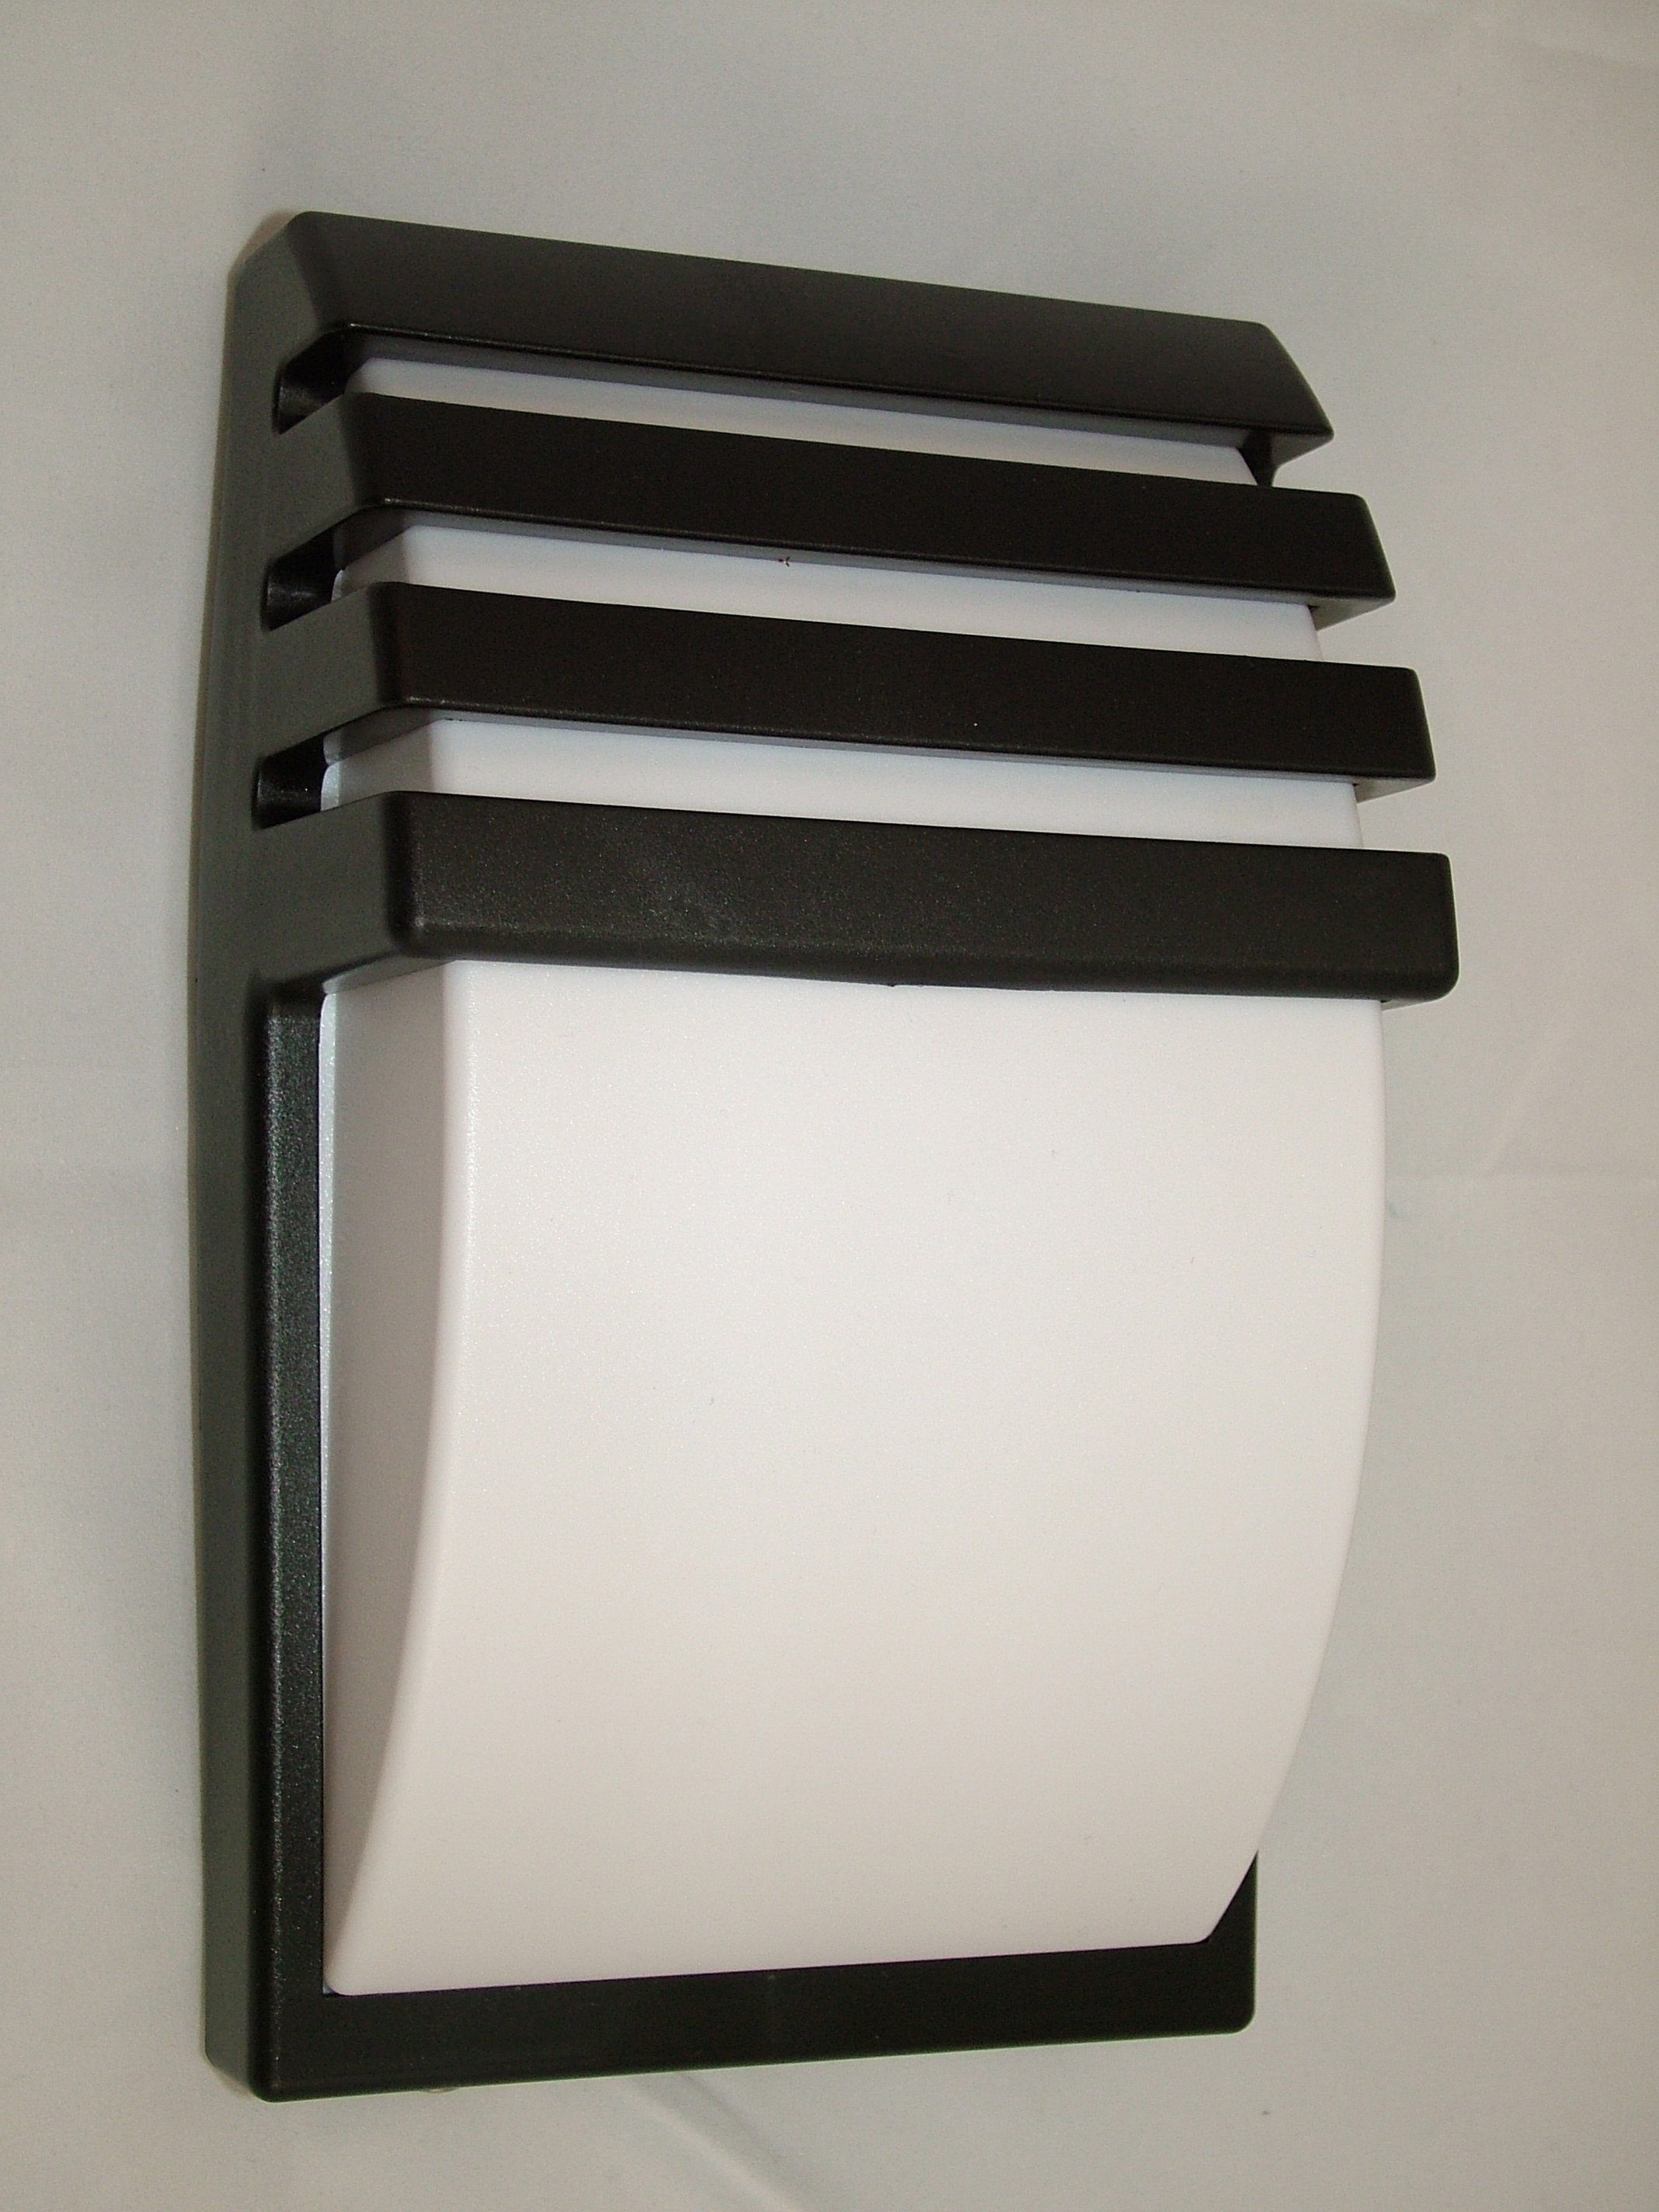 Large Outdoor Modern Wall Mounted Lighting Fixtures With Black Intended For Contemporary Outdoor Wall Lights (View 14 of 15)